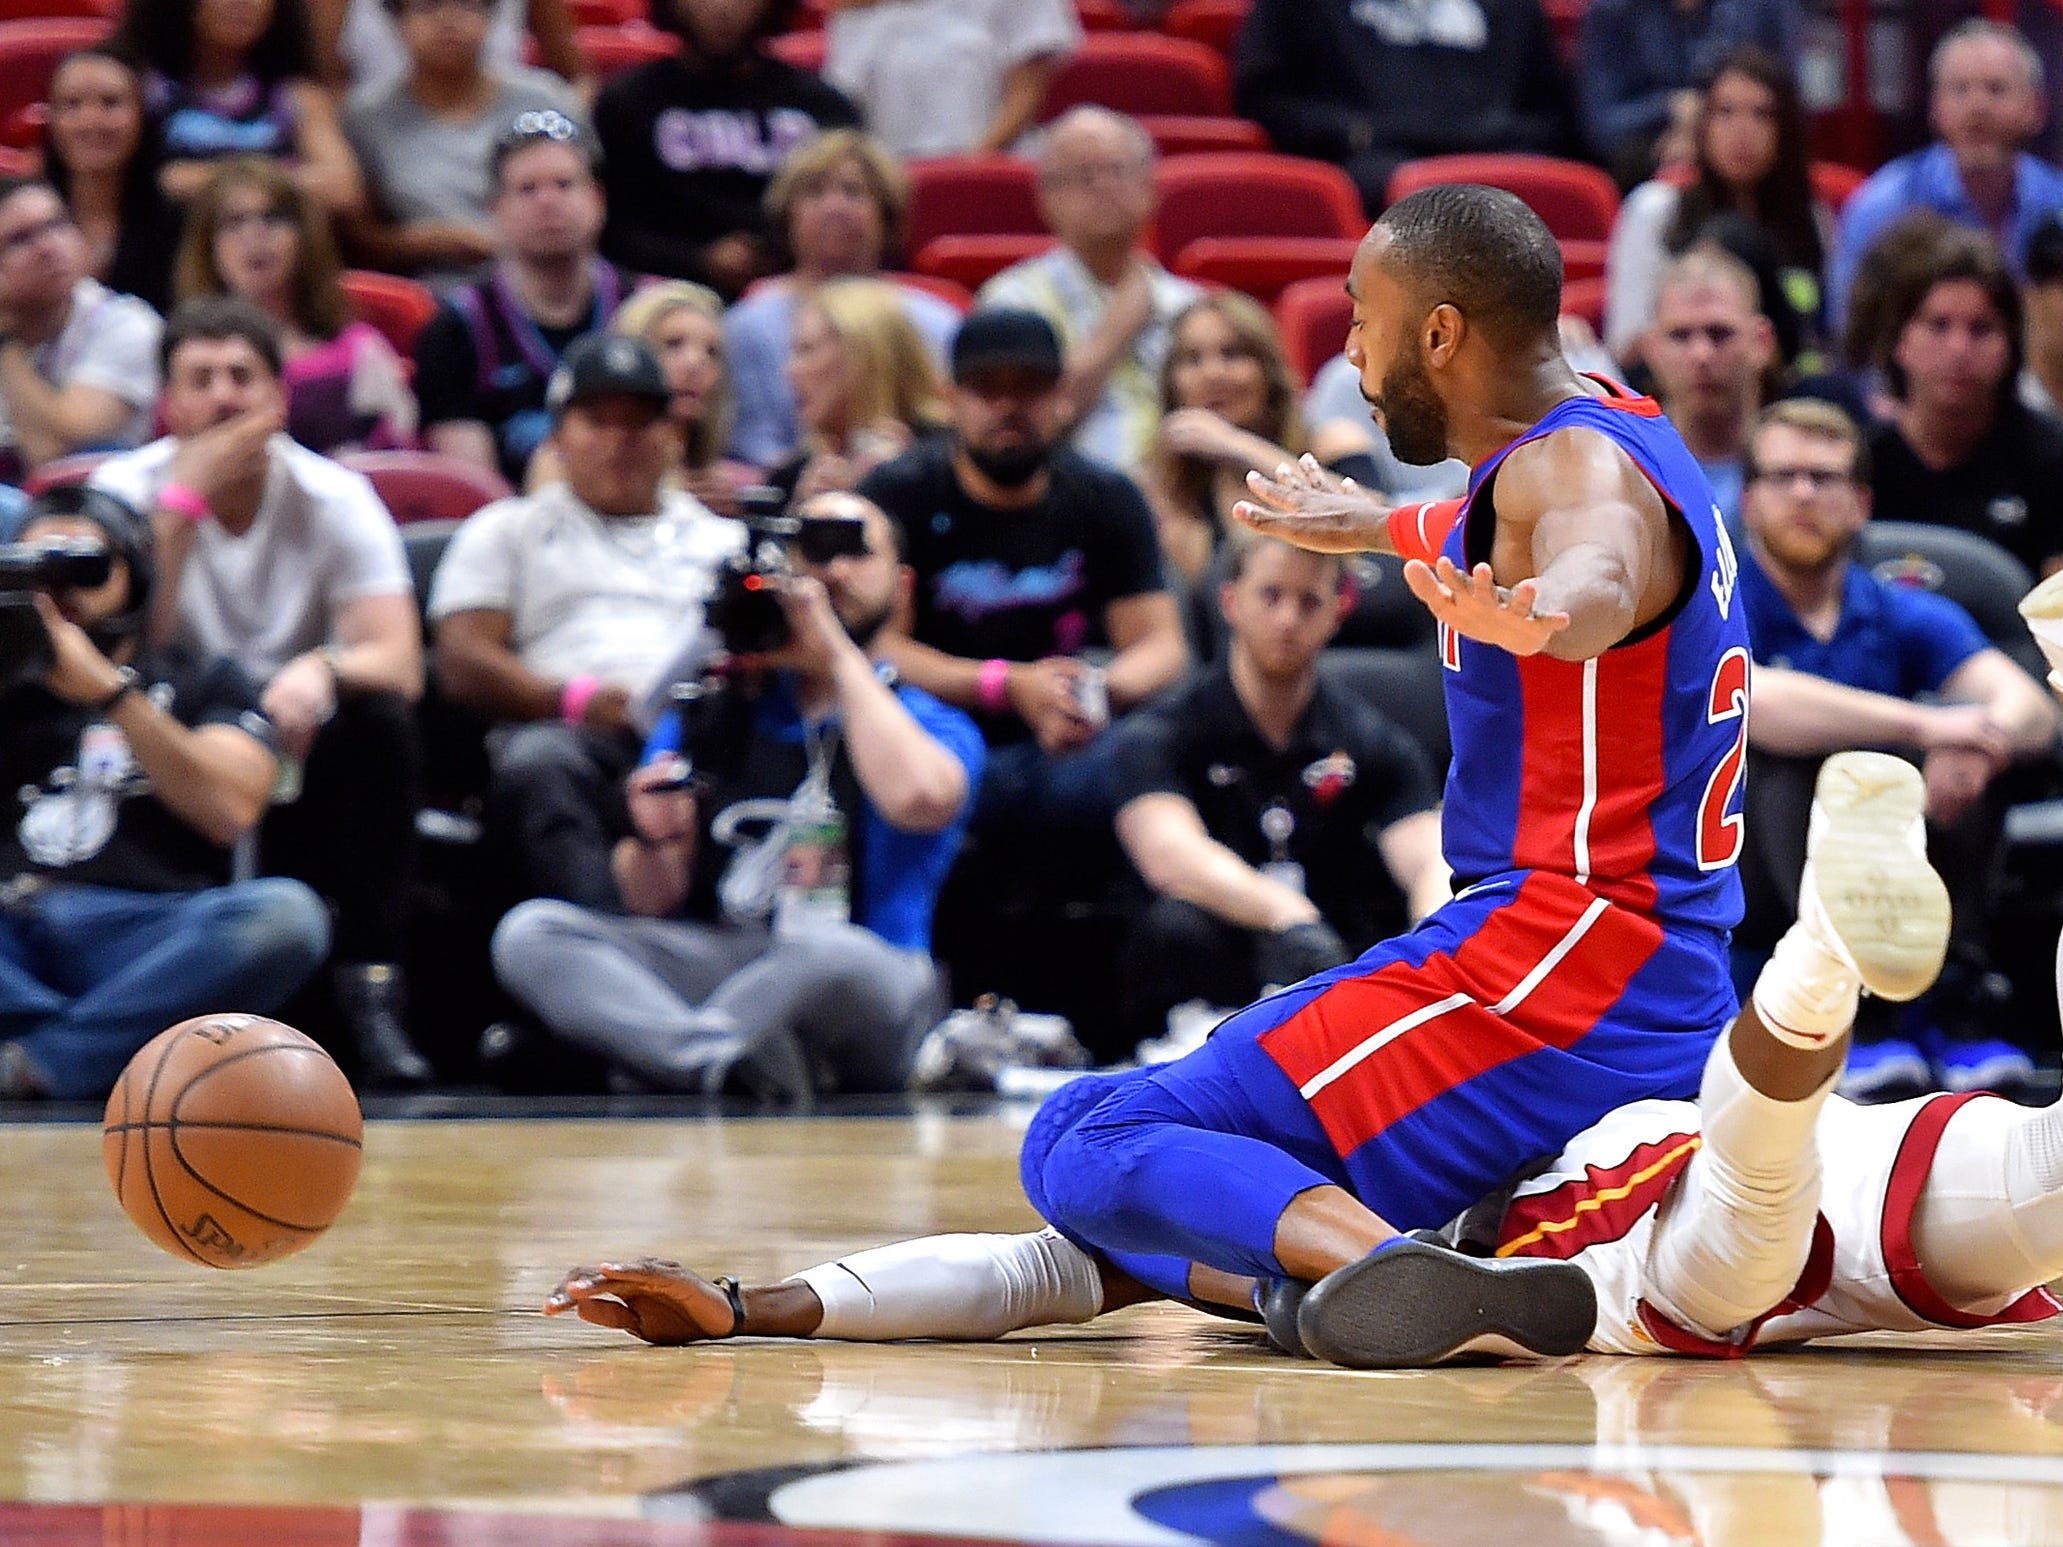 Detroit Pistons guard Wayne Ellington (20) collides with Miami Heat guard Josh Richardson (0) during the second half at American Airlines Arena on Wednesday, March 13, 2019.